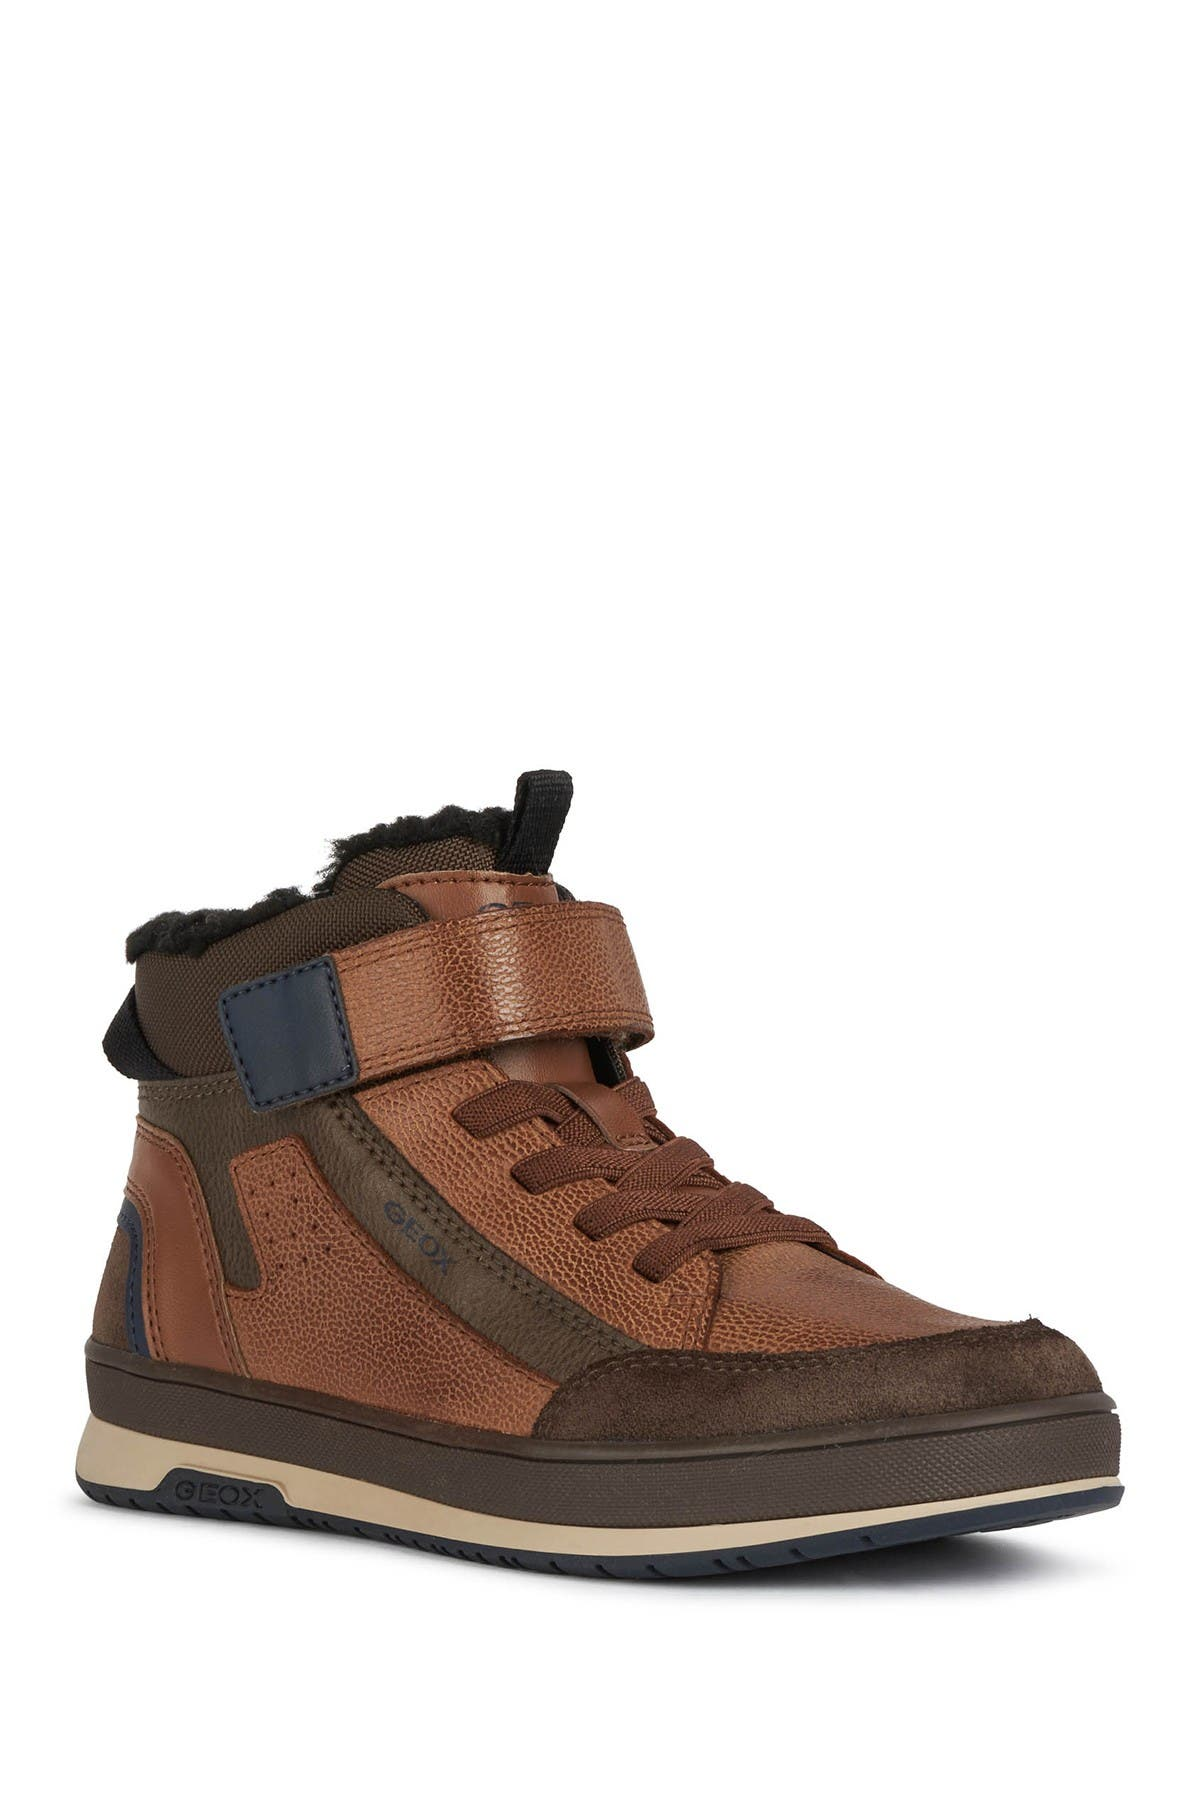 Image of GEOX Astuto Faux Shearling Lined Sneaker